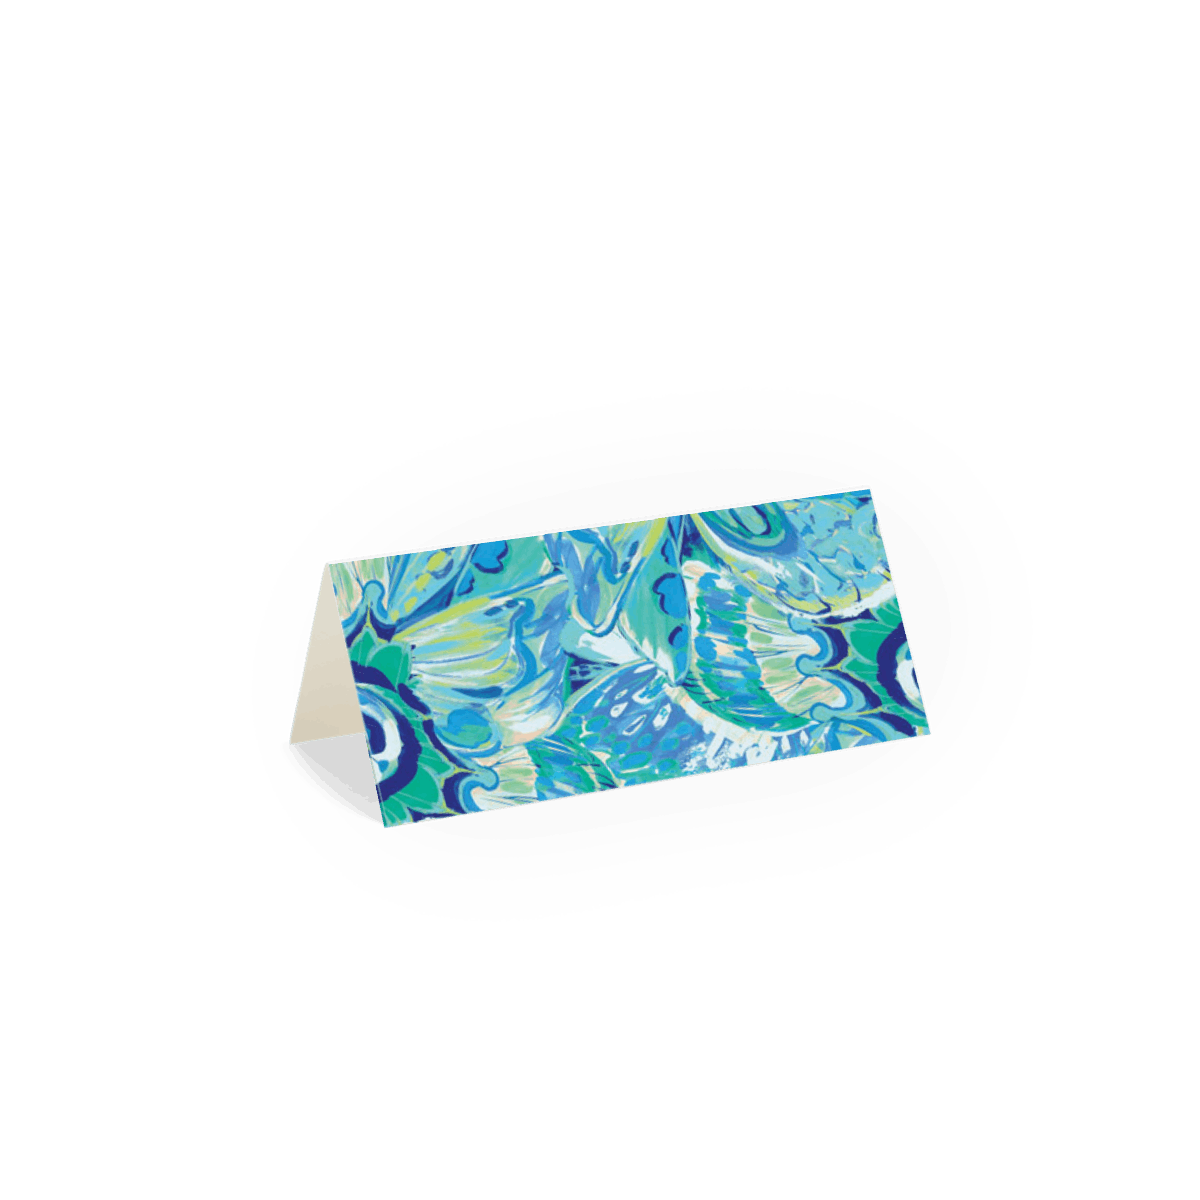 Https%3a%2f%2fwww.papier.com%2fproduct image%2f81730%2f15%2fbutterfly marble 19667 arriere 1561991394.png?ixlib=rb 1.1